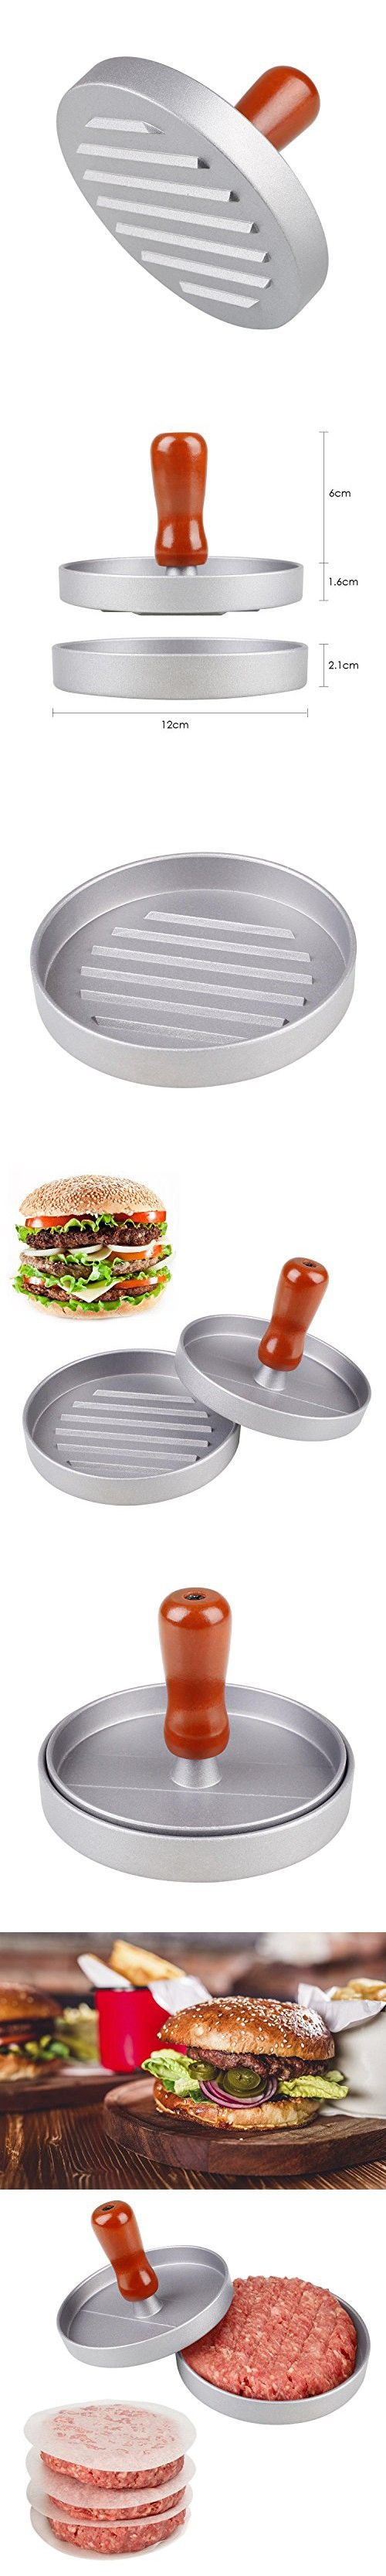 Good Kicode Aluminum Burger Press Hamburger Maker Non Stick Patty Mold Ideal For  BBQ(Gray)